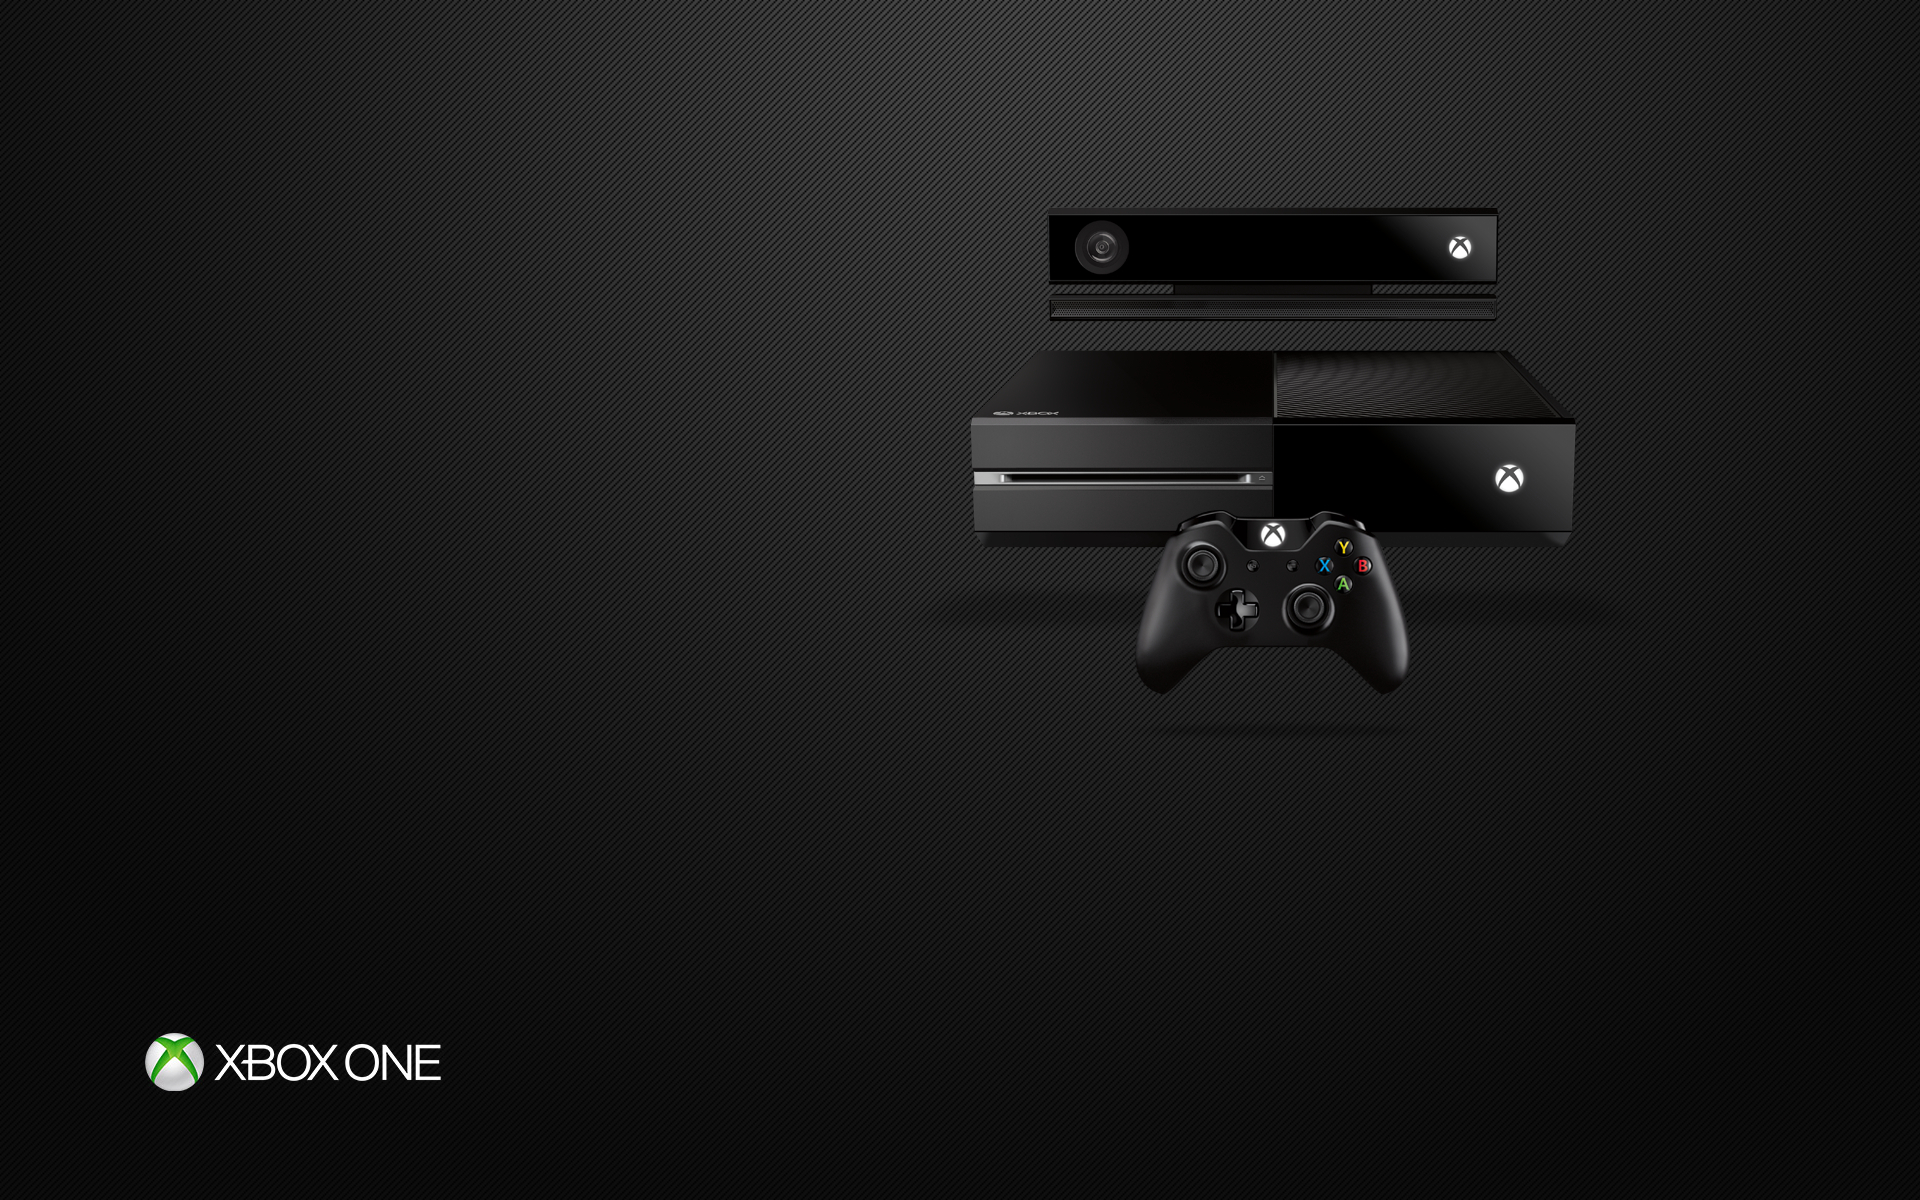 [49+] Cool Wallpapers for Xbox One on WallpaperSafari